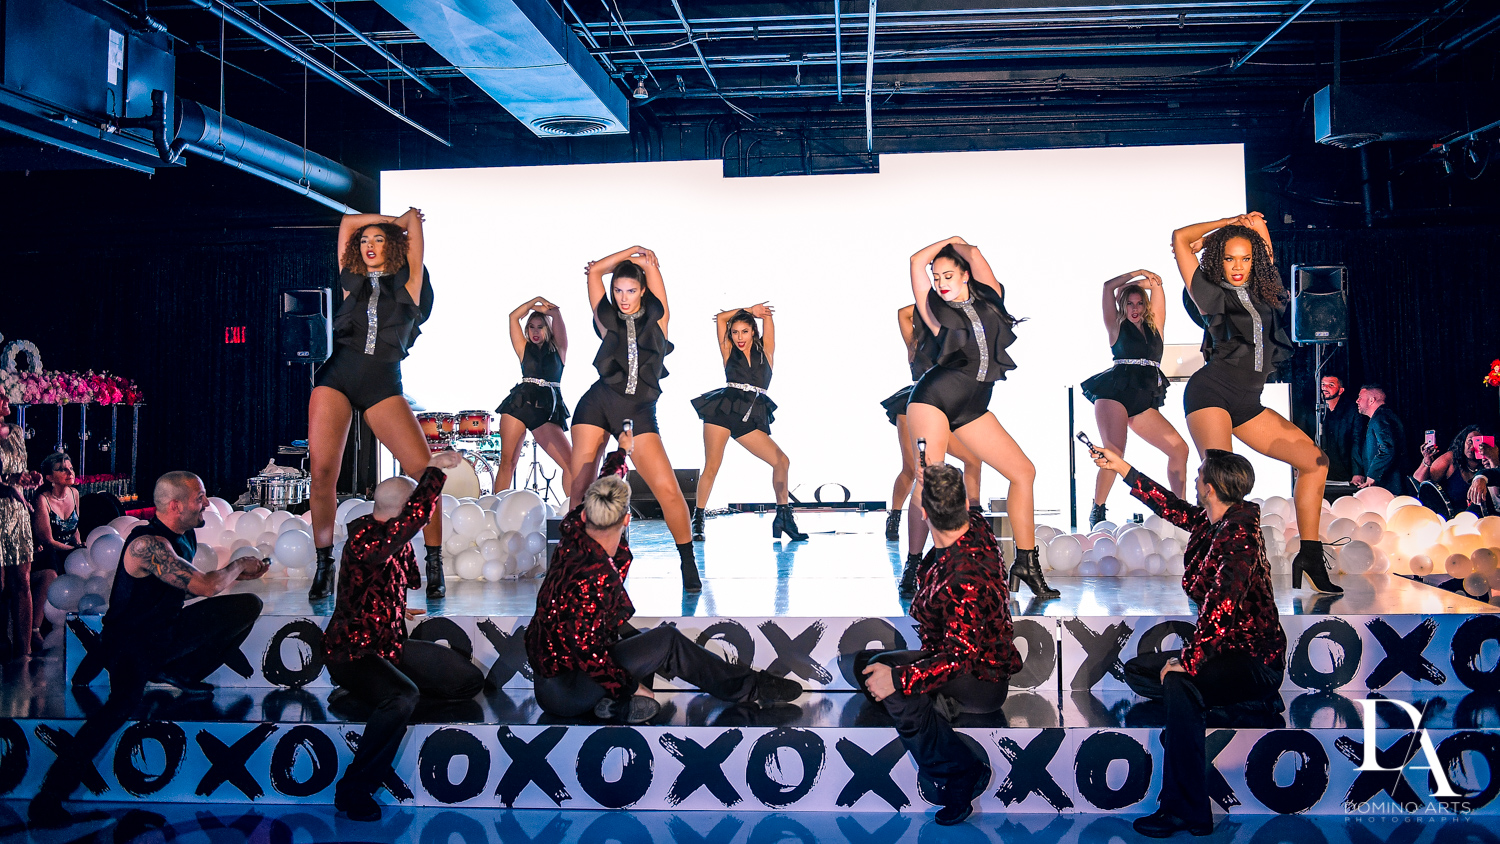 performers at Fashion Theme Bat Mitzvah at Gallery of Amazing Things by Domino Arts Photography